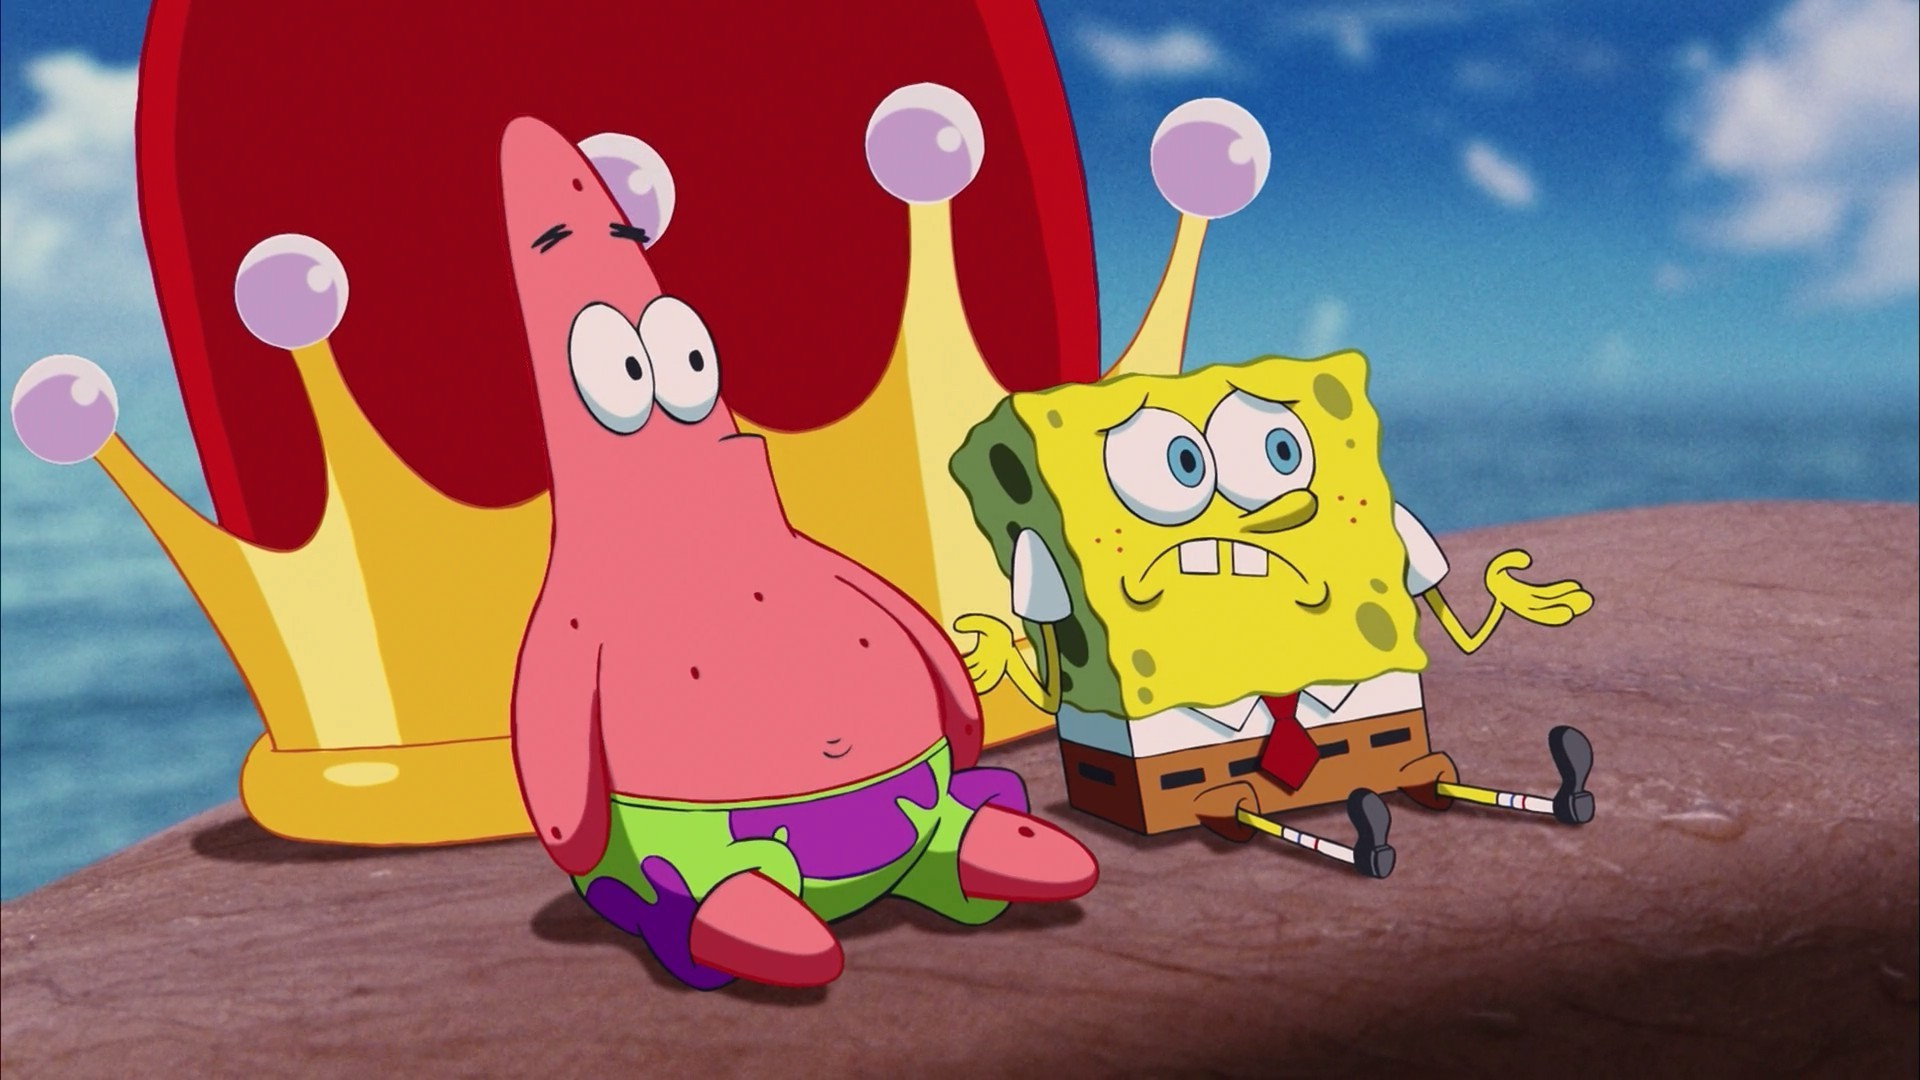 Patrick Star Funny Face Wallpapers Wide : anime Wallpaper .